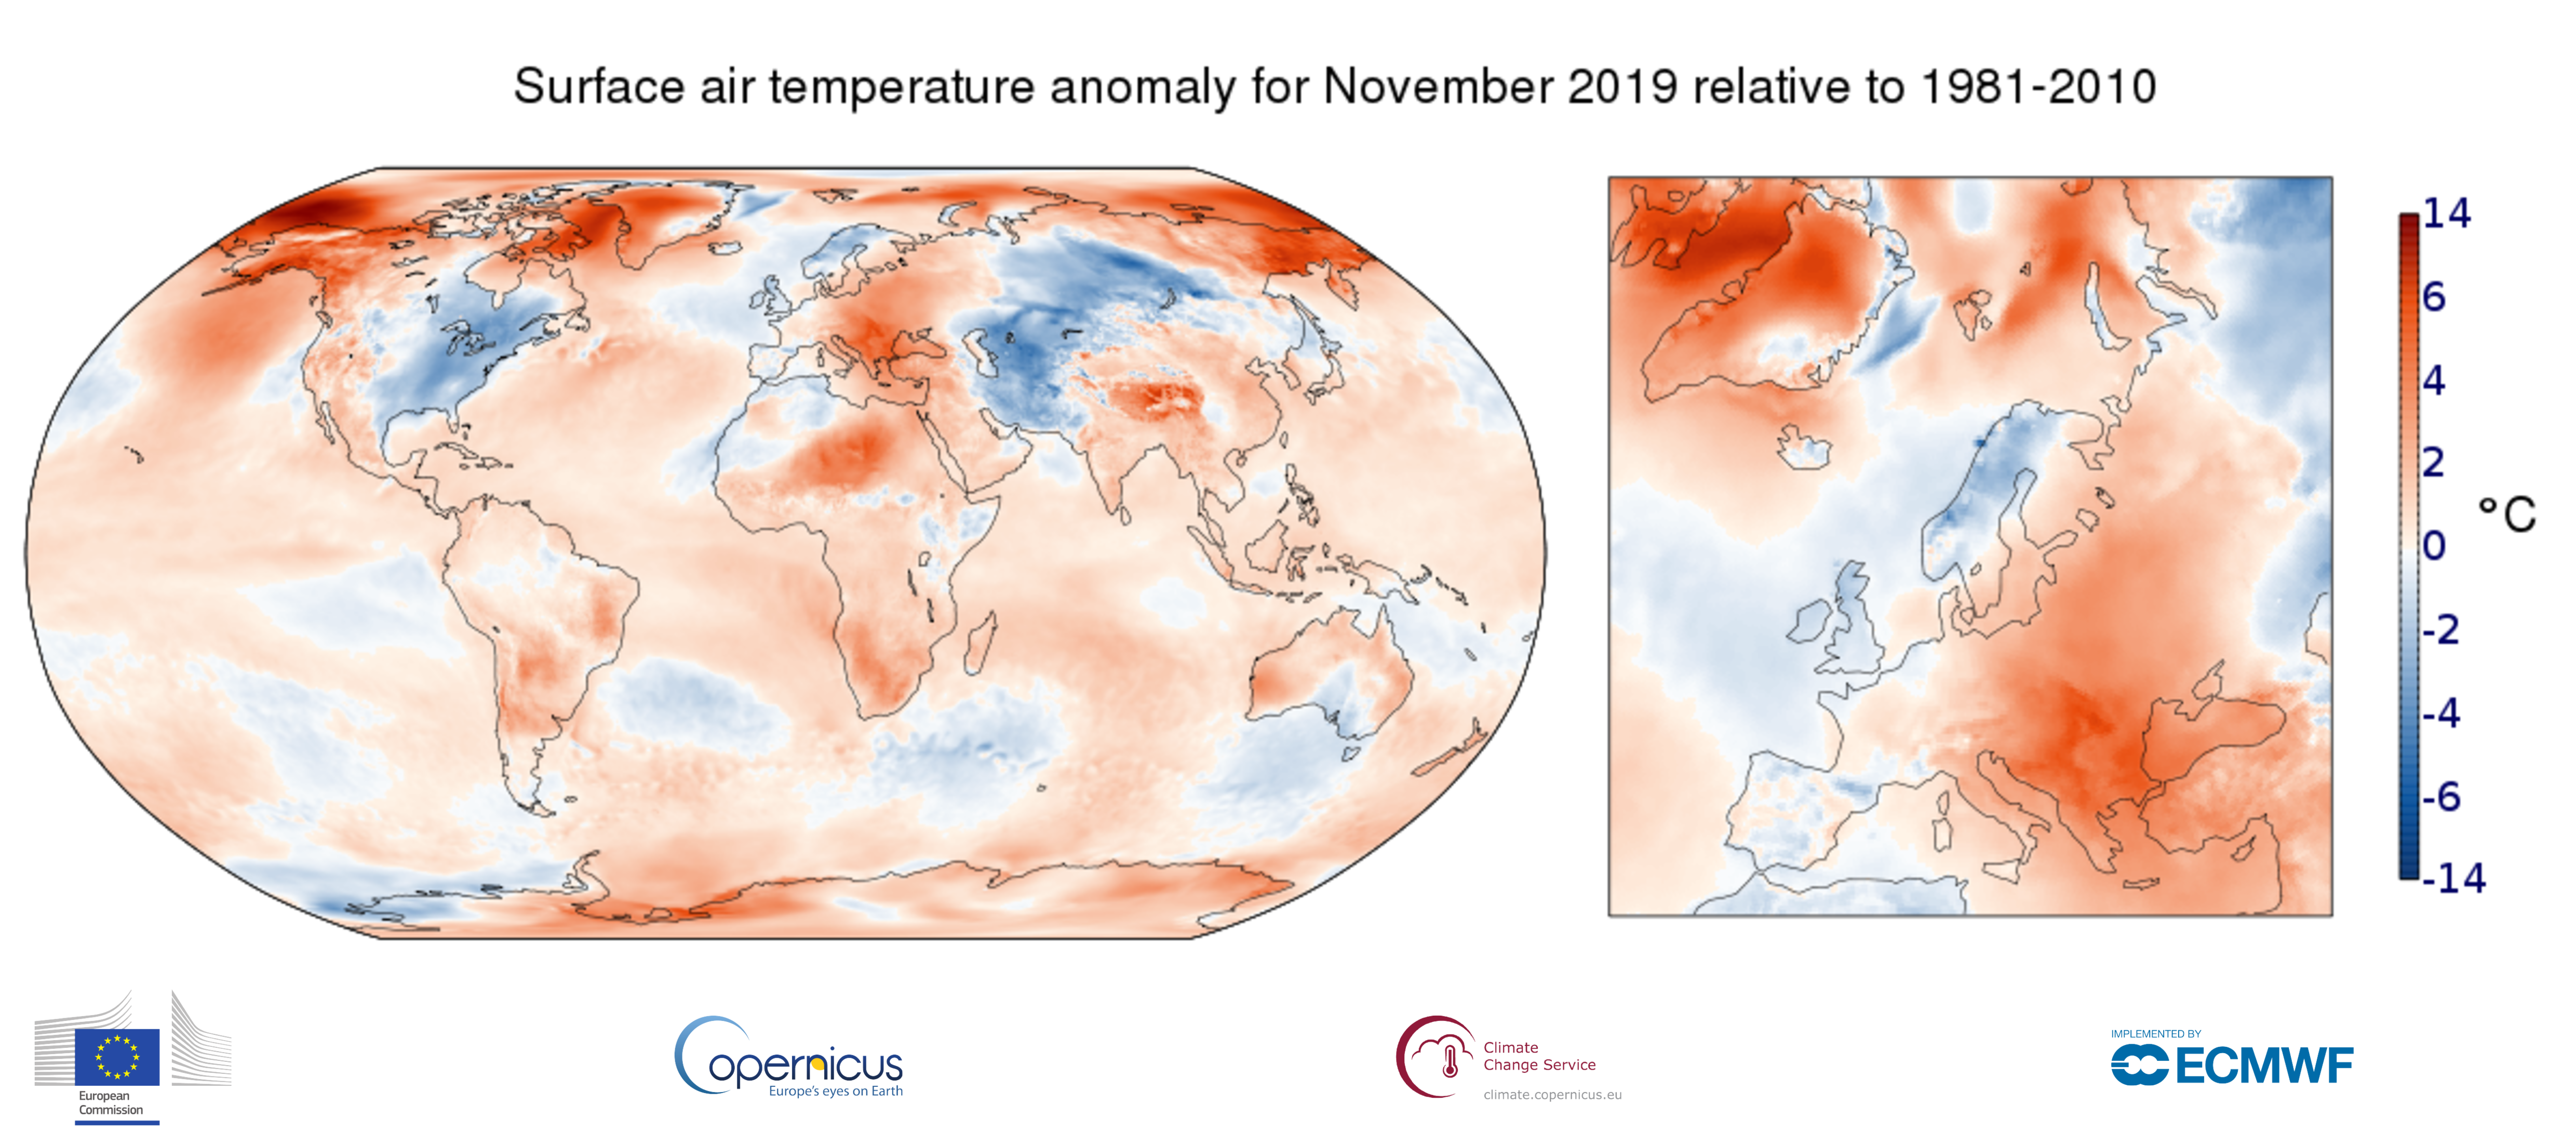 map 1month anomaly Global ea 2t 201911 v02 1 ART 158: TEMPERATURA DEL AIRE EN SUPERFICIE N0VIEMBRE 2019